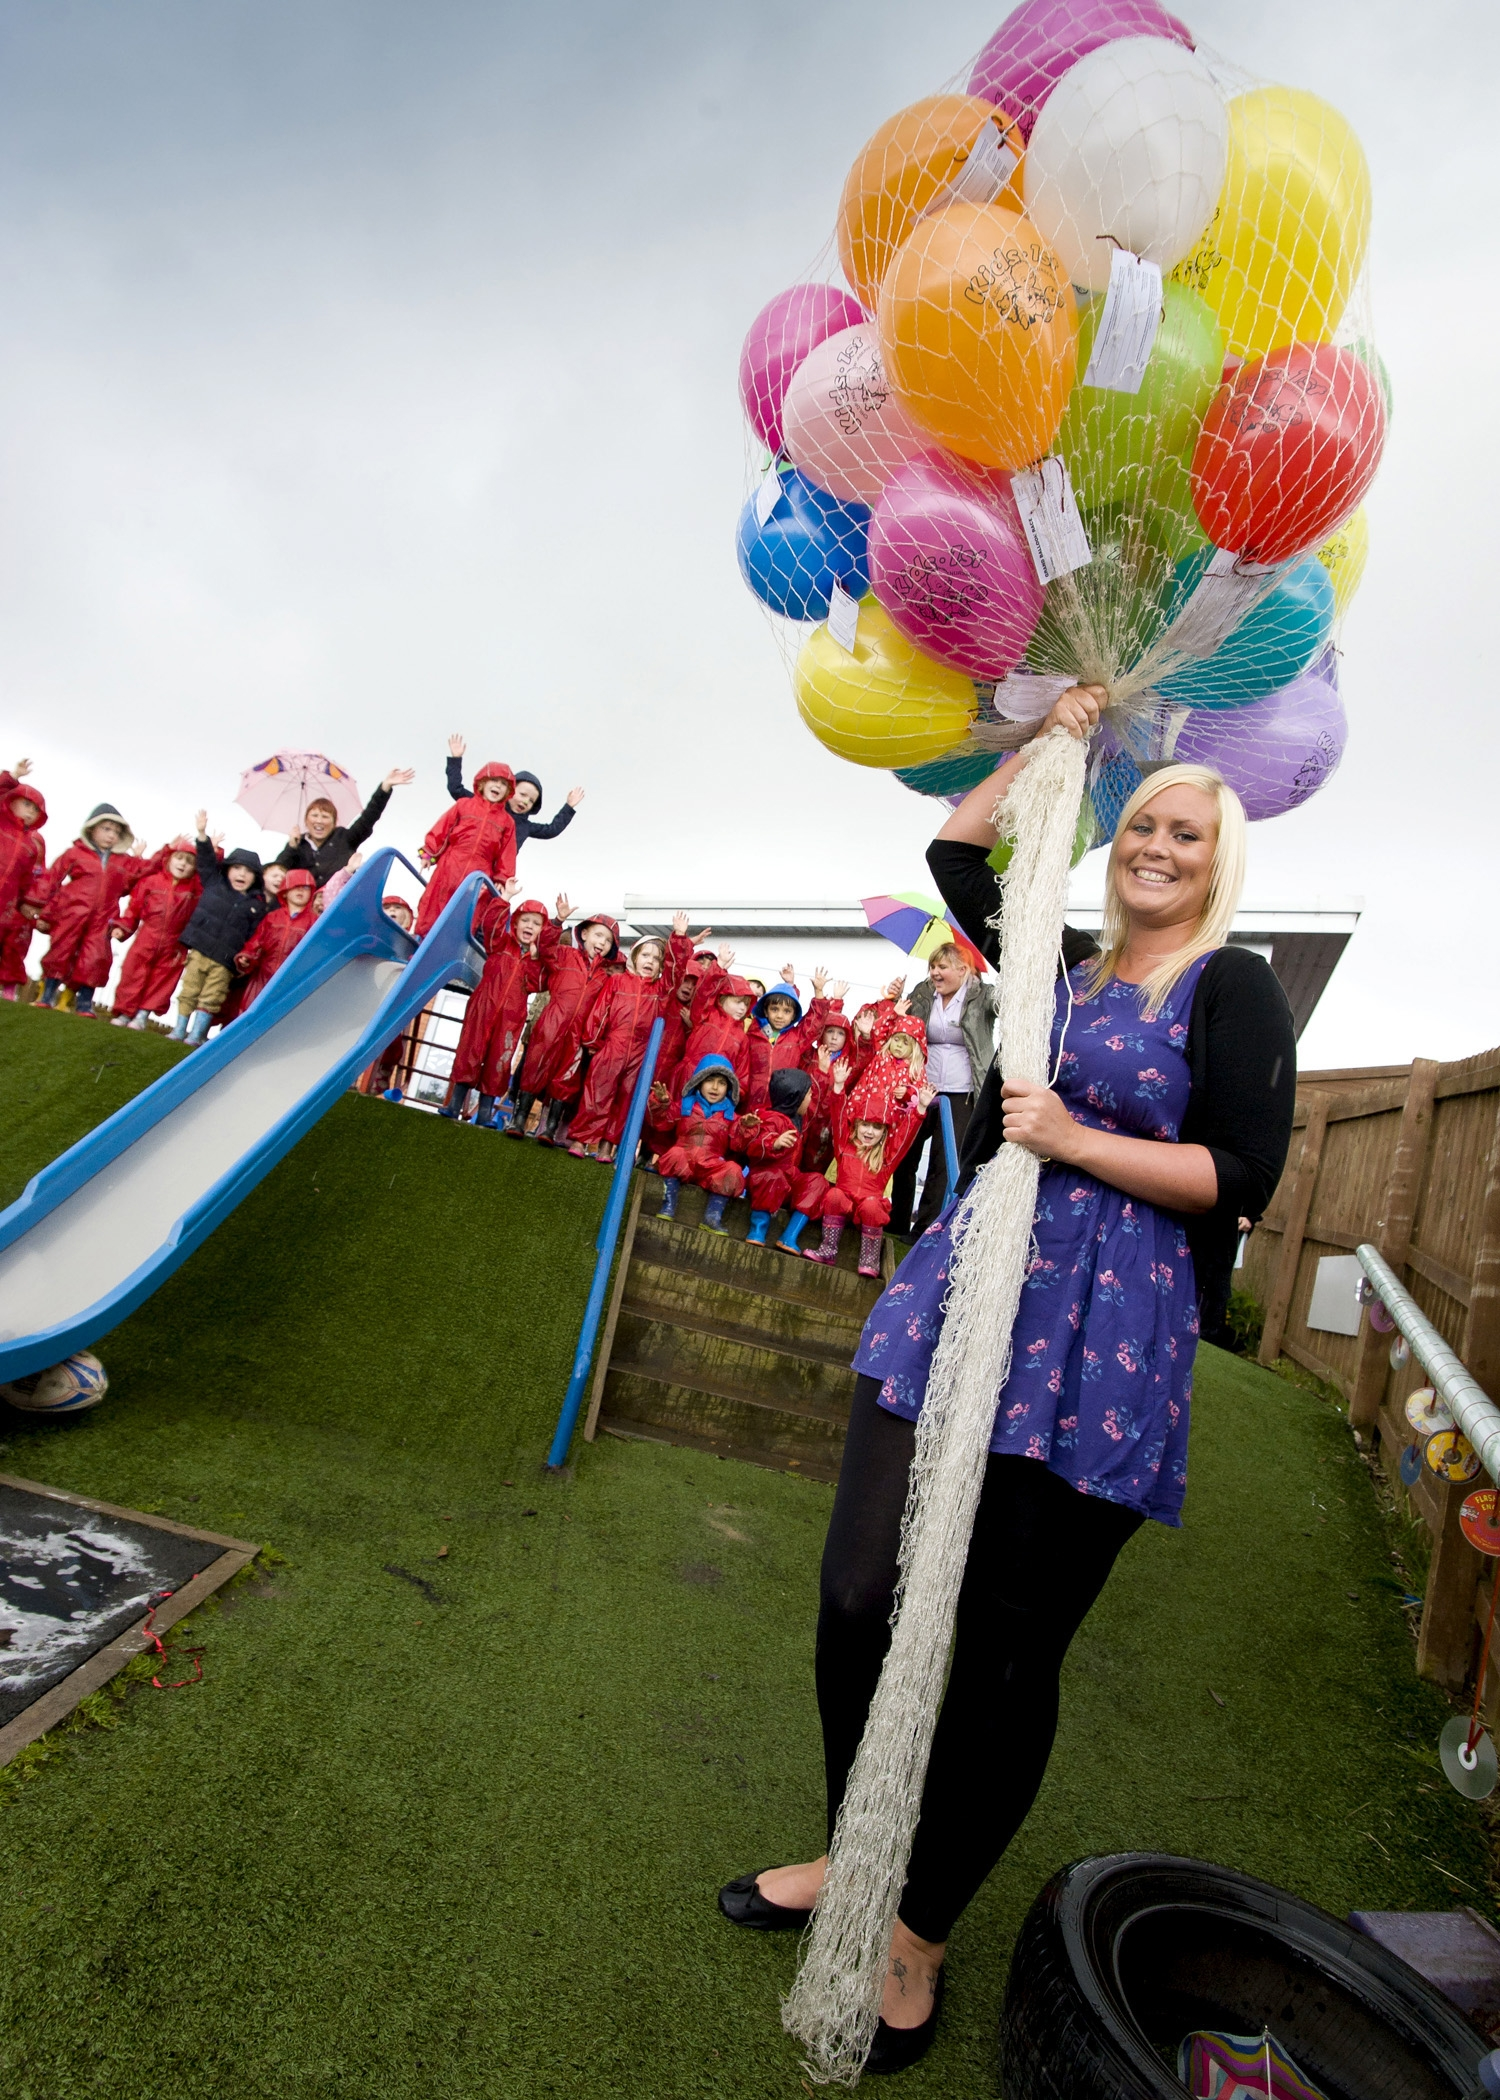 Balloon racing for charity